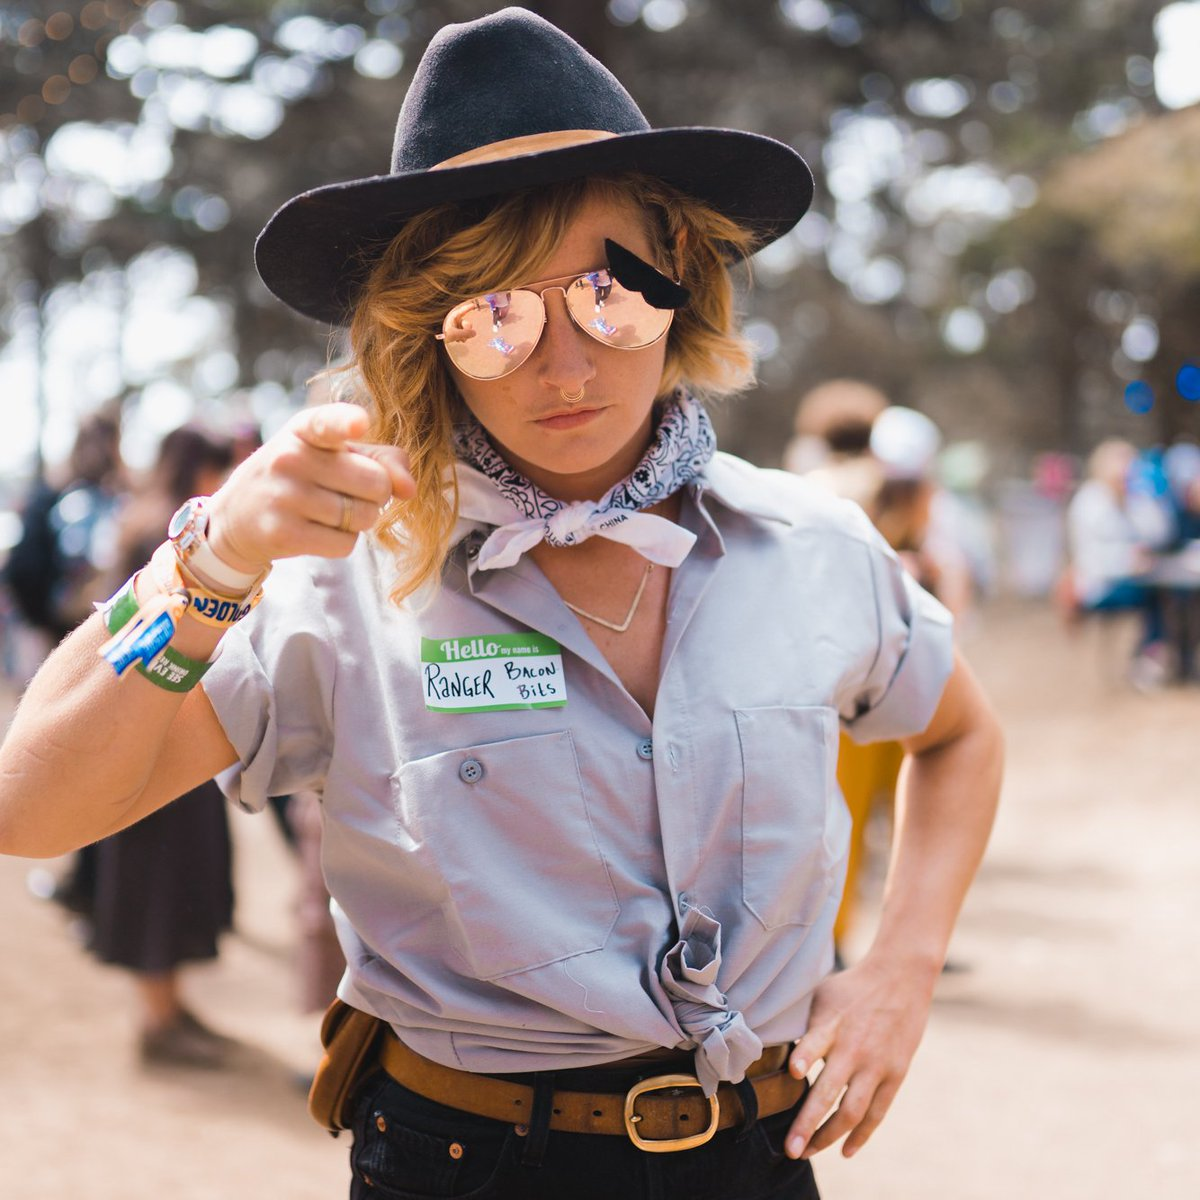 ranger dave is this year's hottest #halloween costume. #outsidelands (📸 by @jerm_cohen and @jackgorlin)